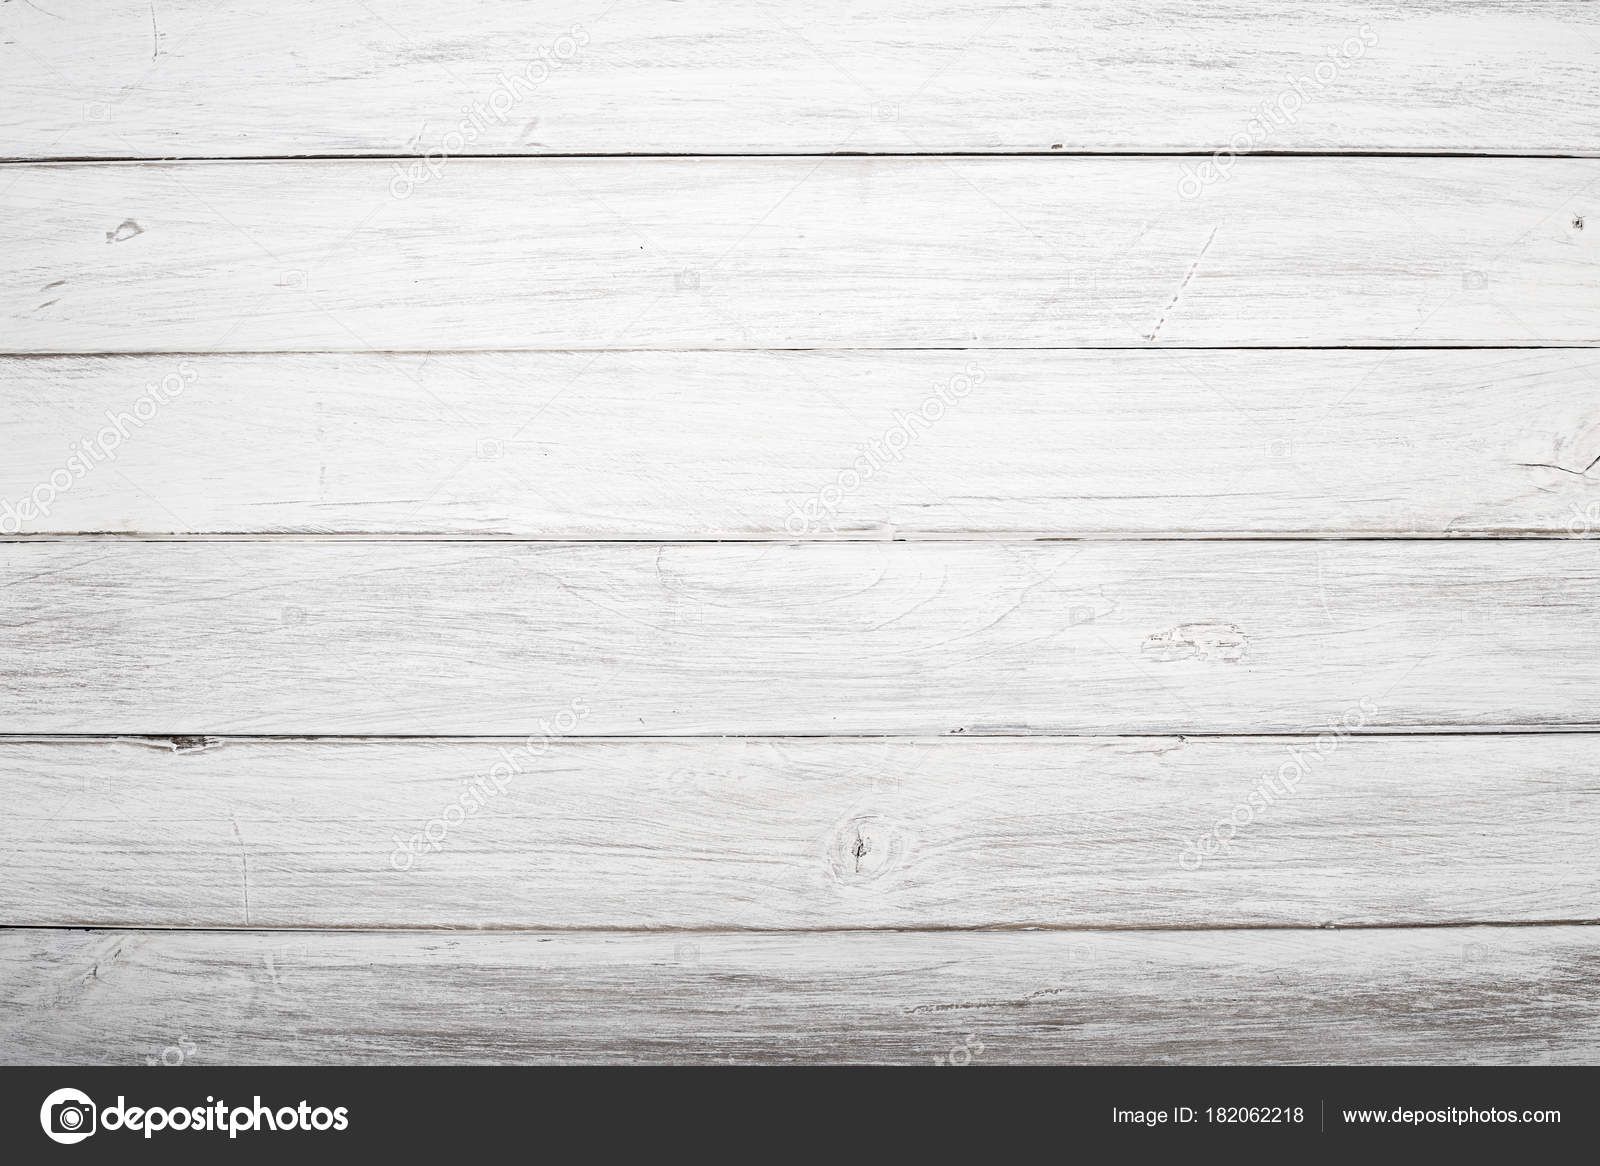 Picture of: White Table Top Texture White Wood Texture Background Wooden Table Top View Stock Photo C Pongans68 Gmail Com 182062218